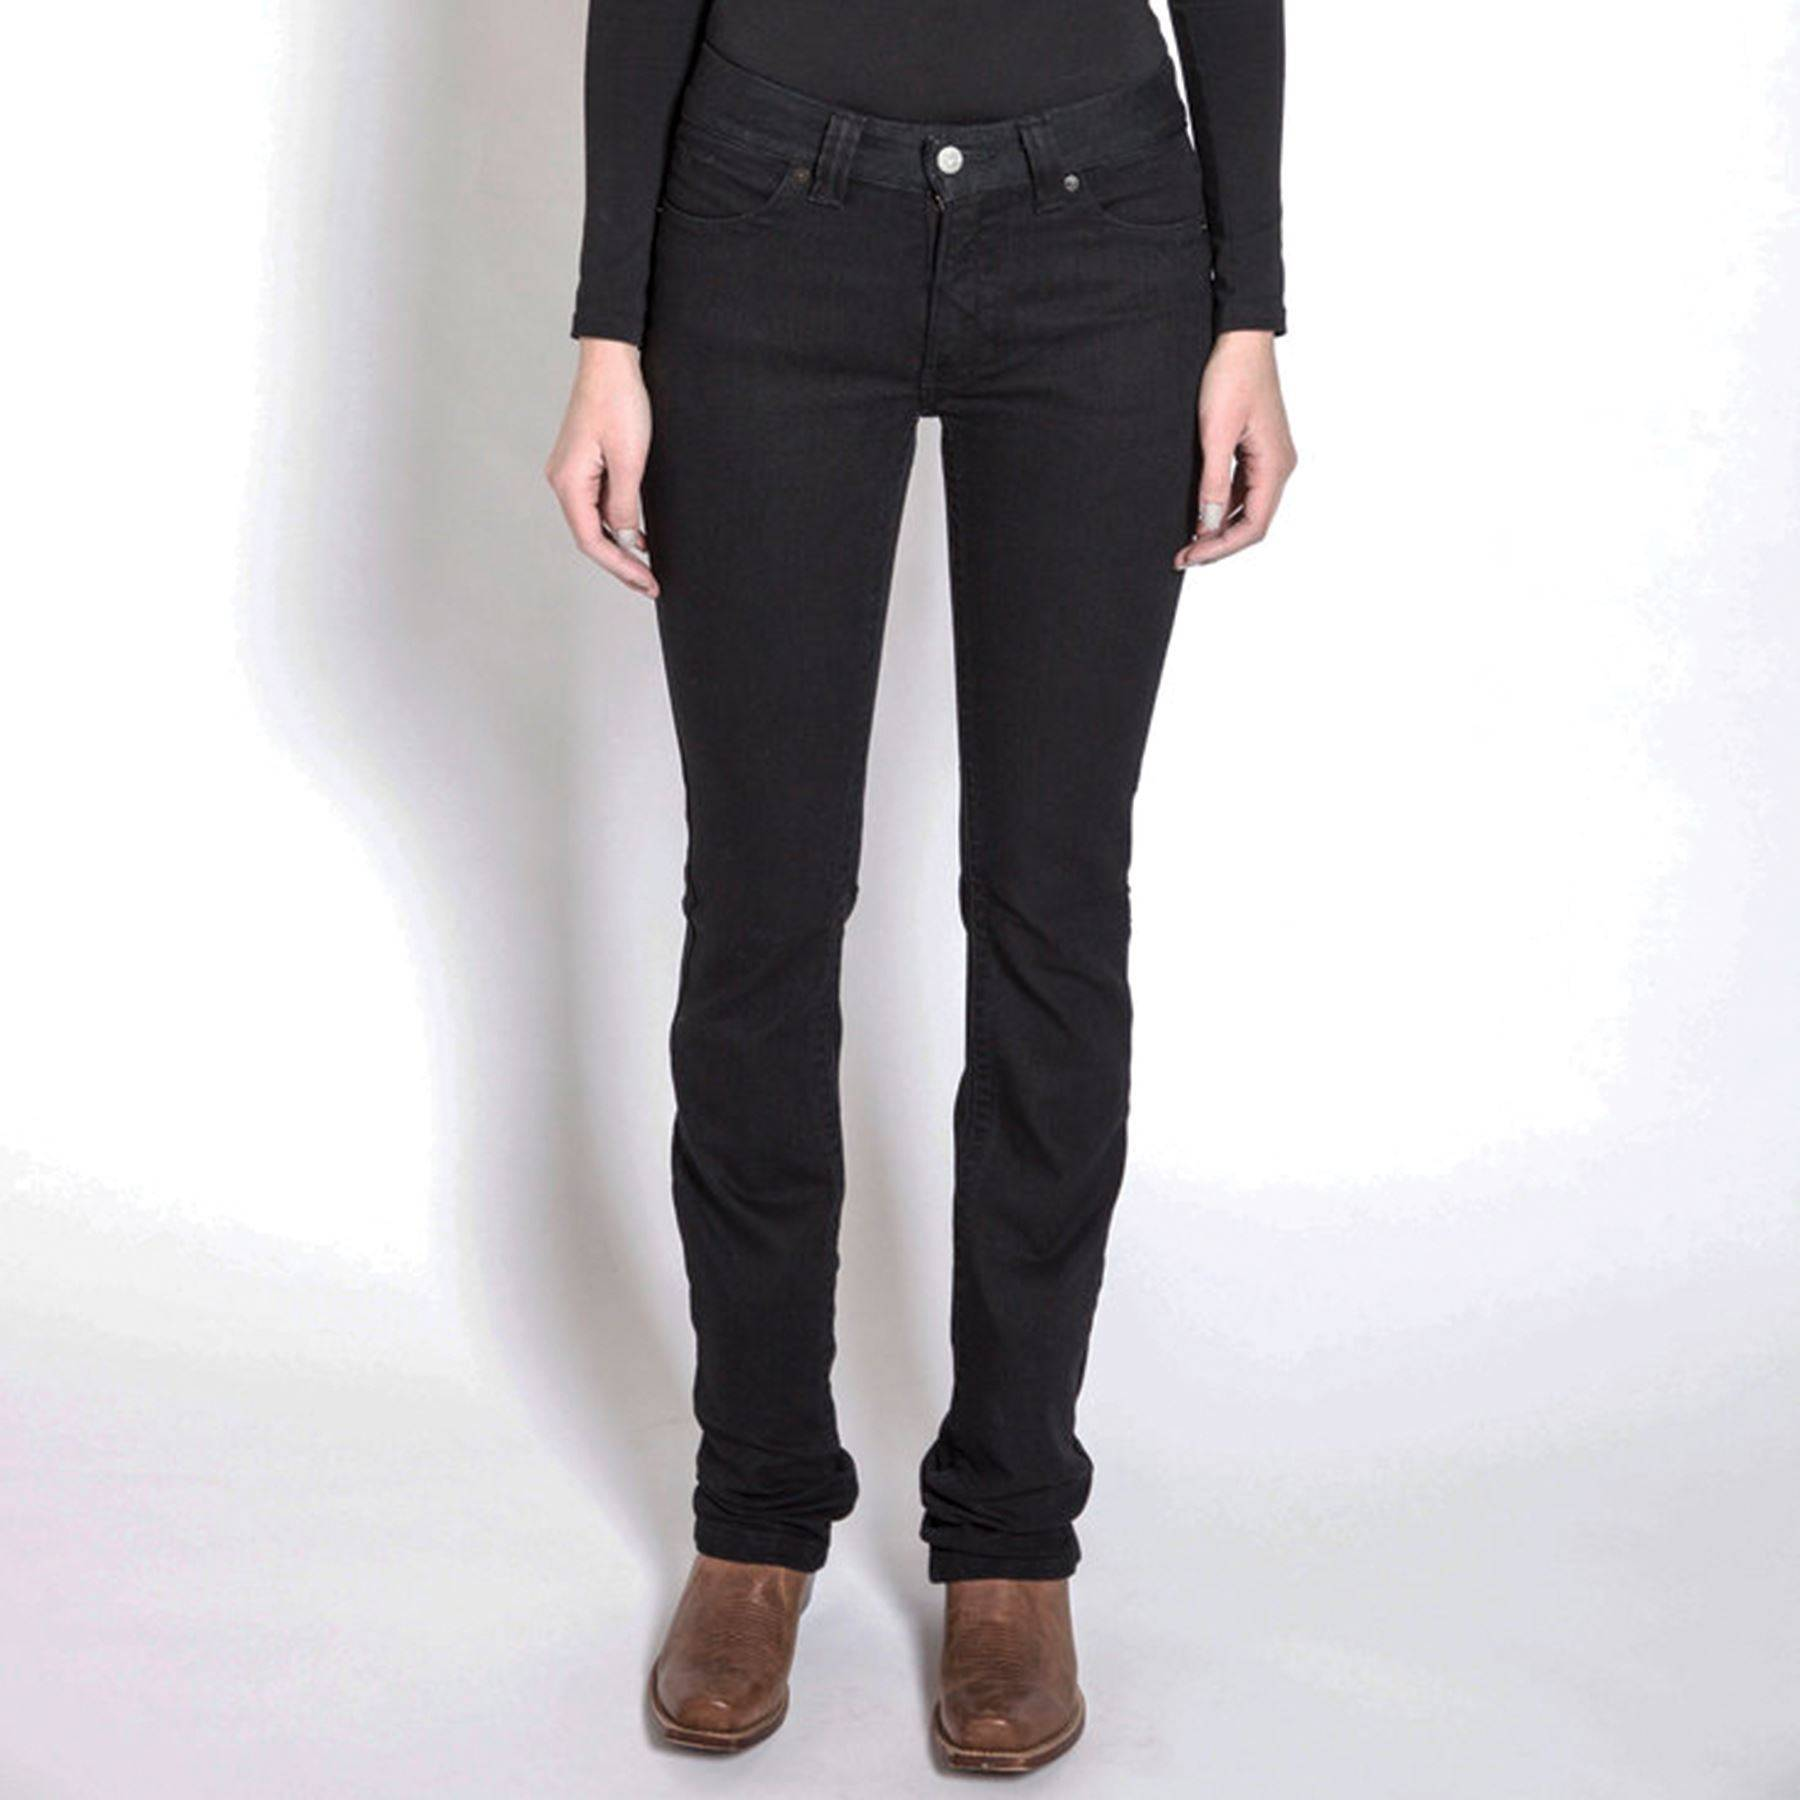 Kimes Ranch Ladies Black Betty Jeans